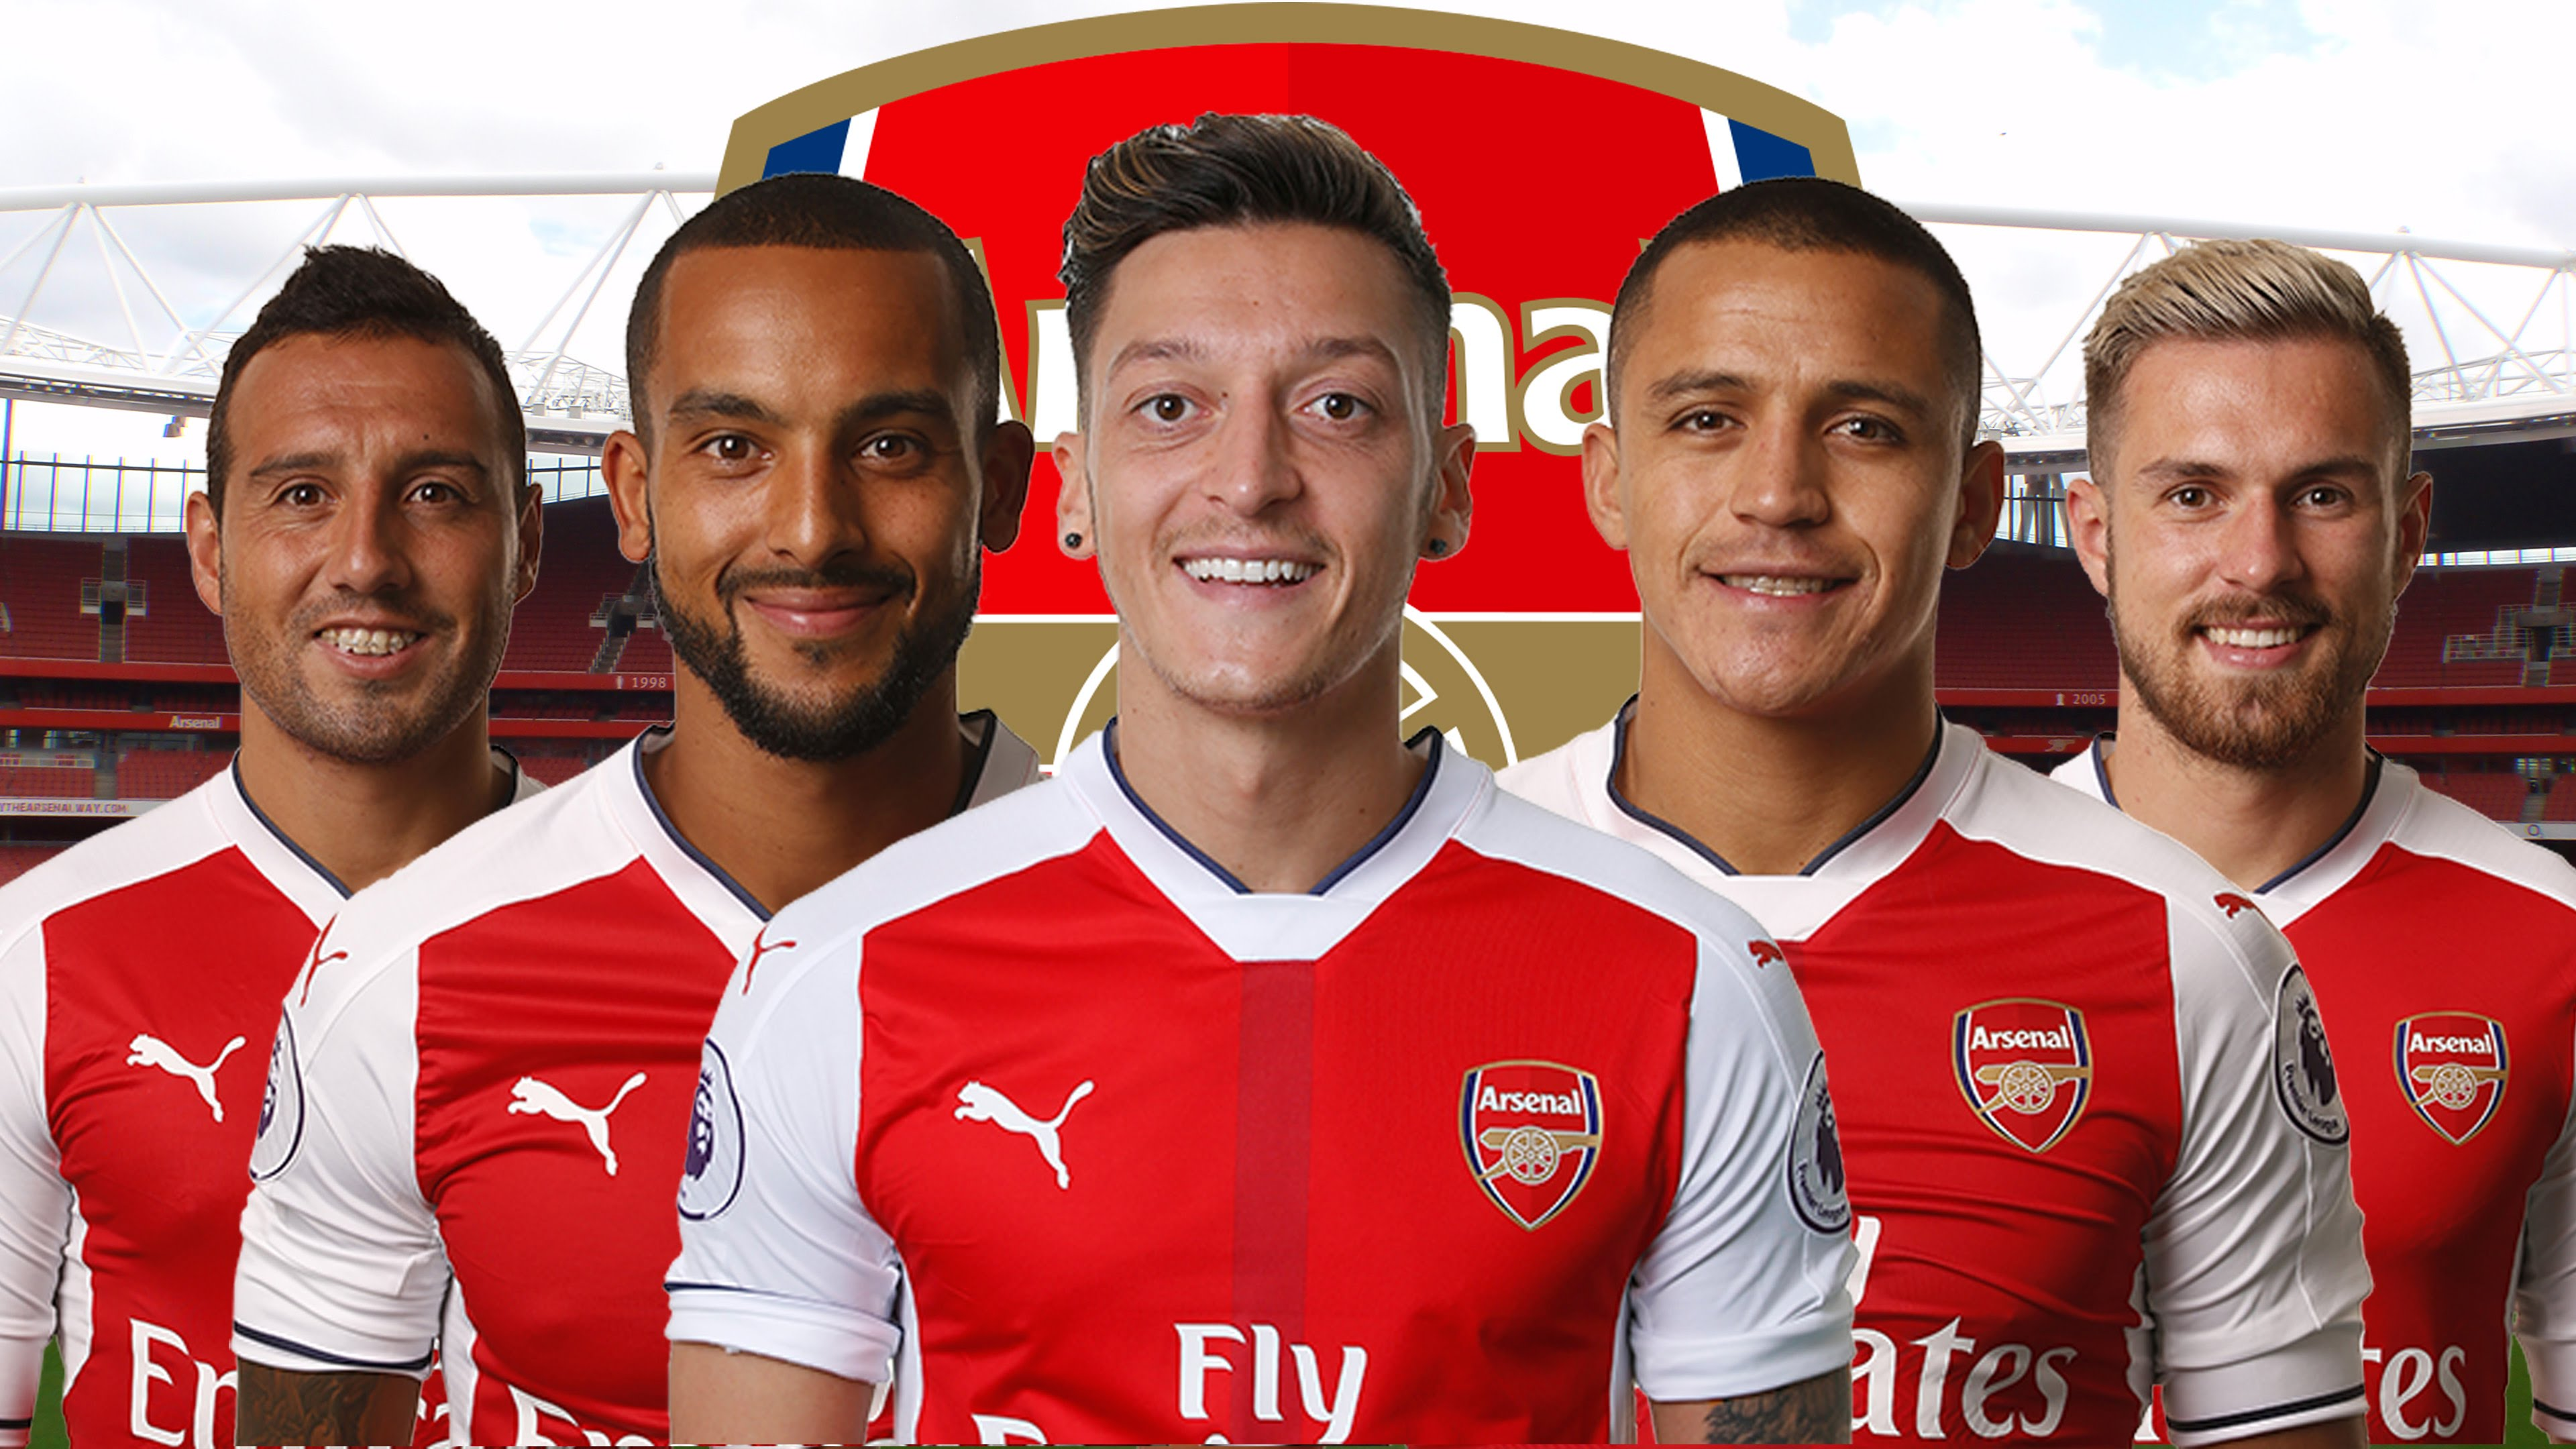 Arsenal – Title Winning Squad?